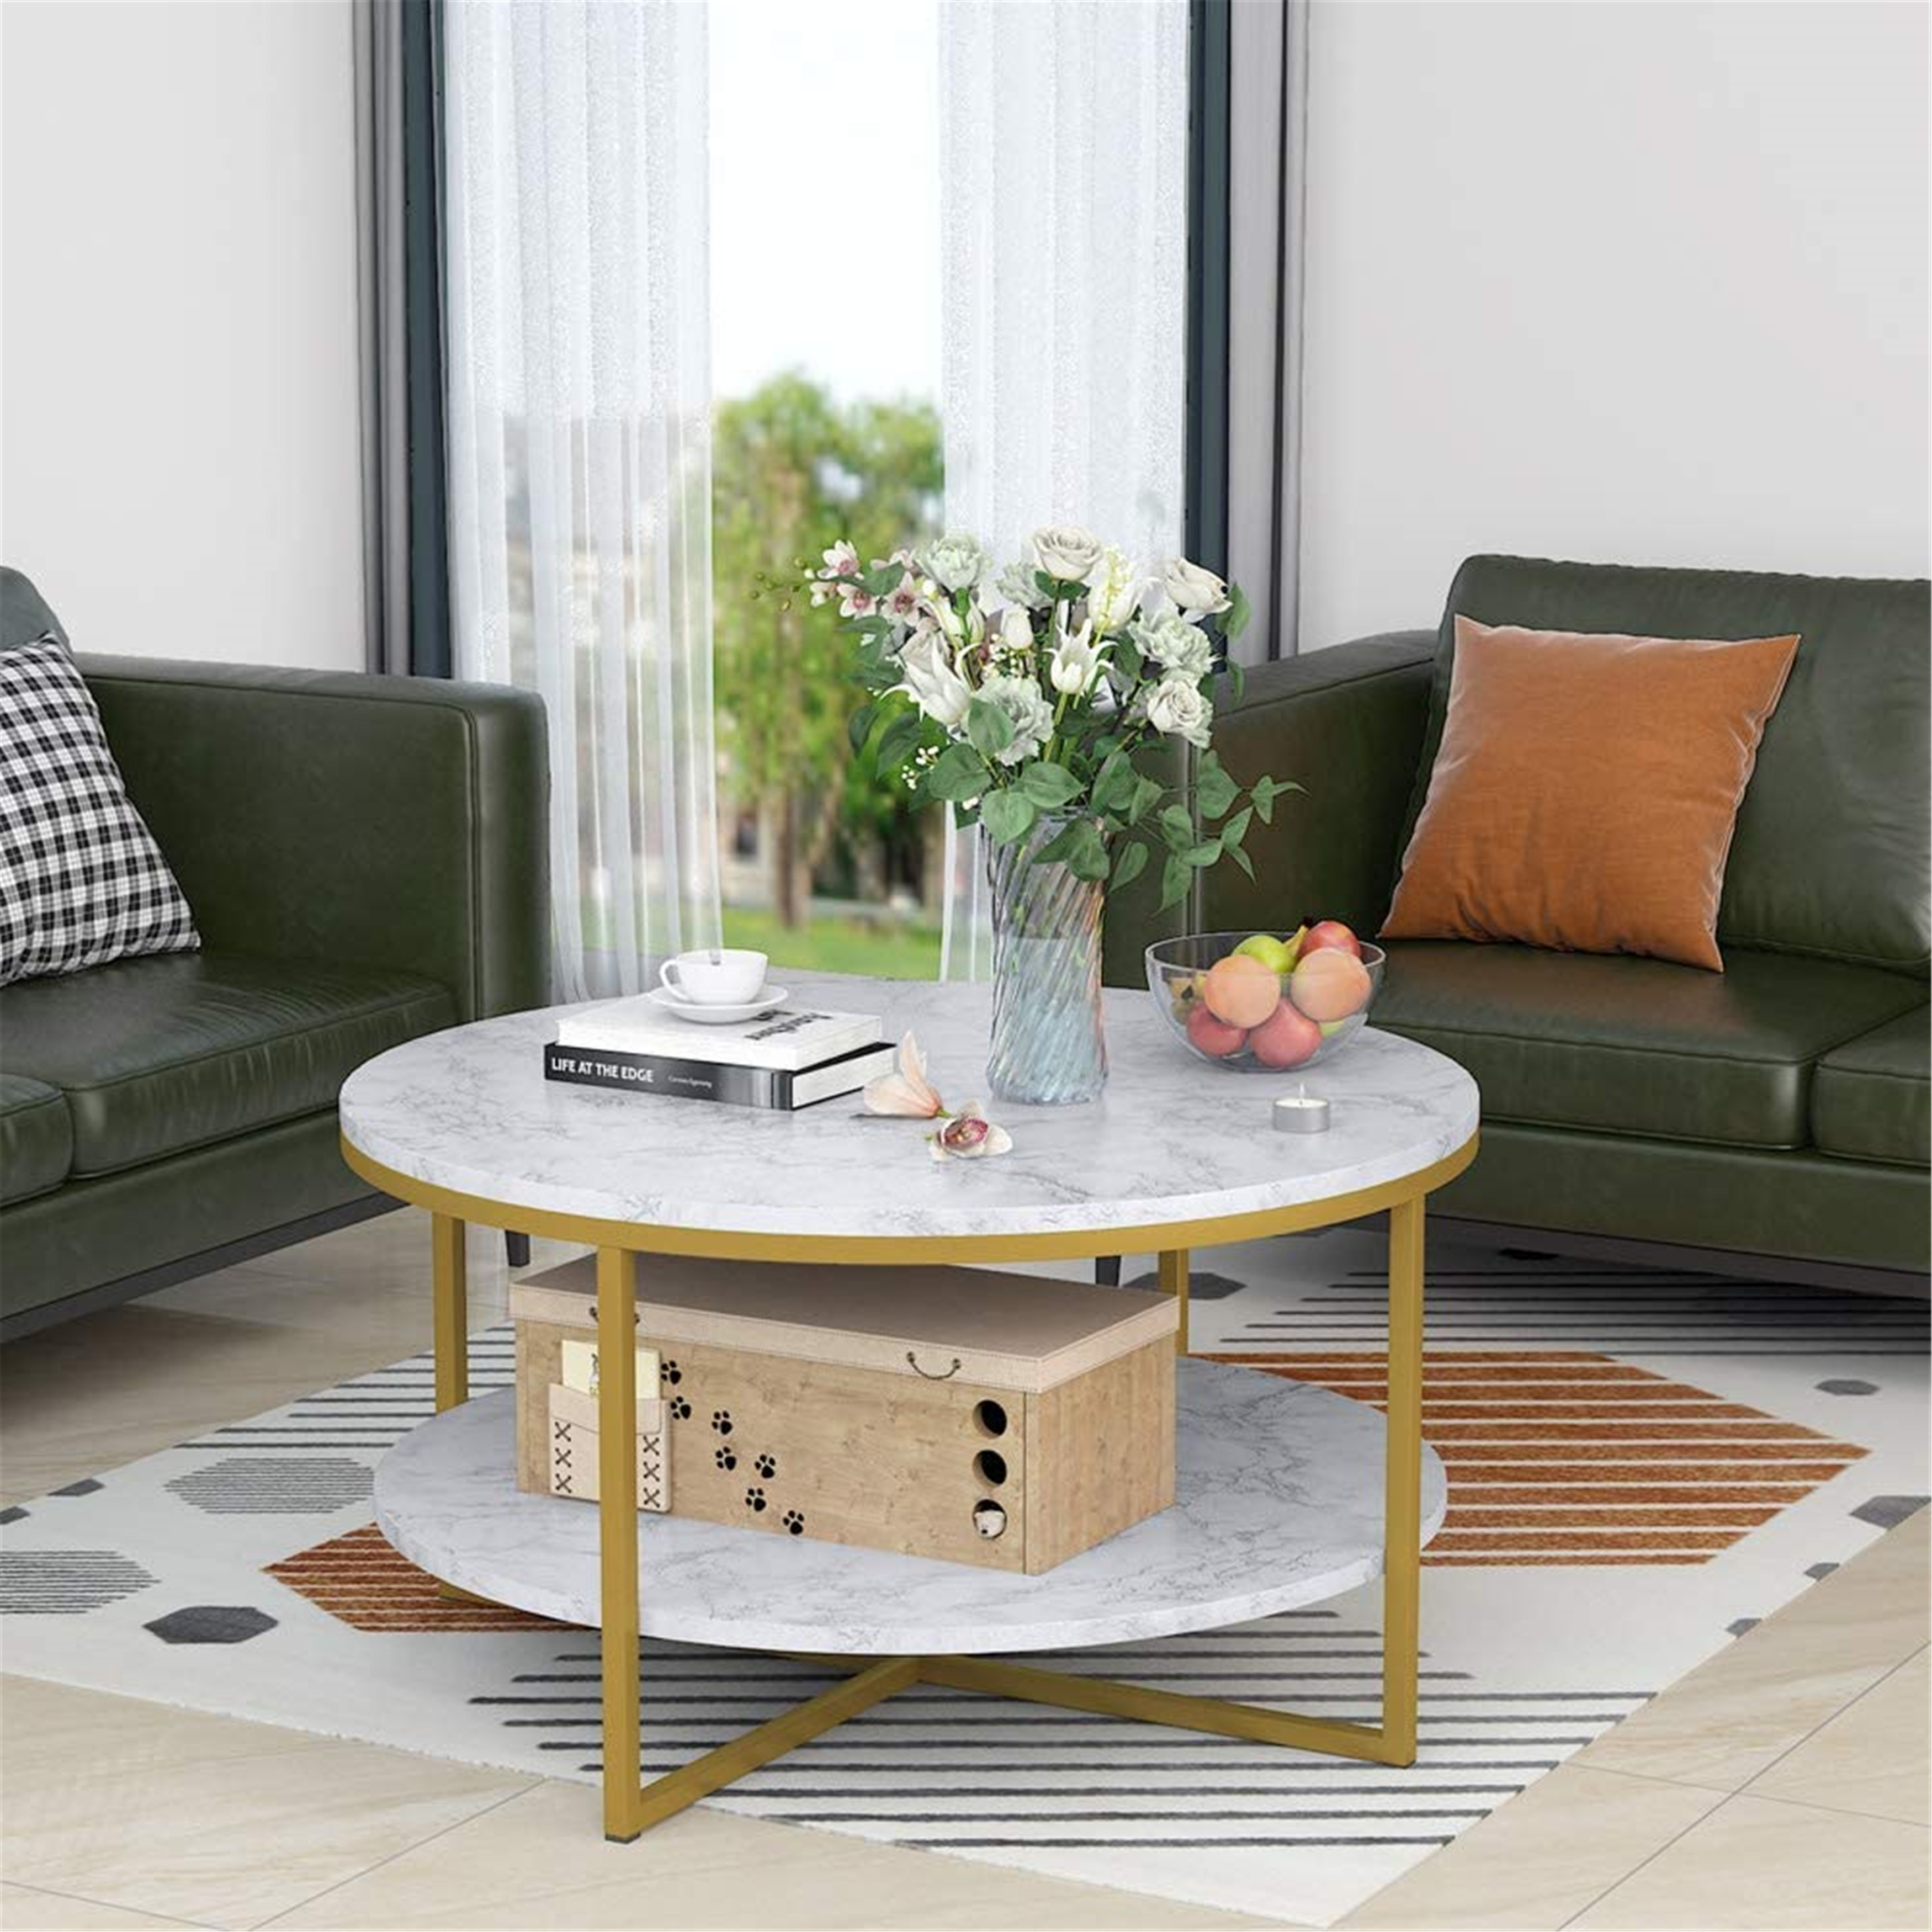 Round Coffee Table Modern Marble With Gold Legs 90x90x48cm White Gold Overstock 31832054